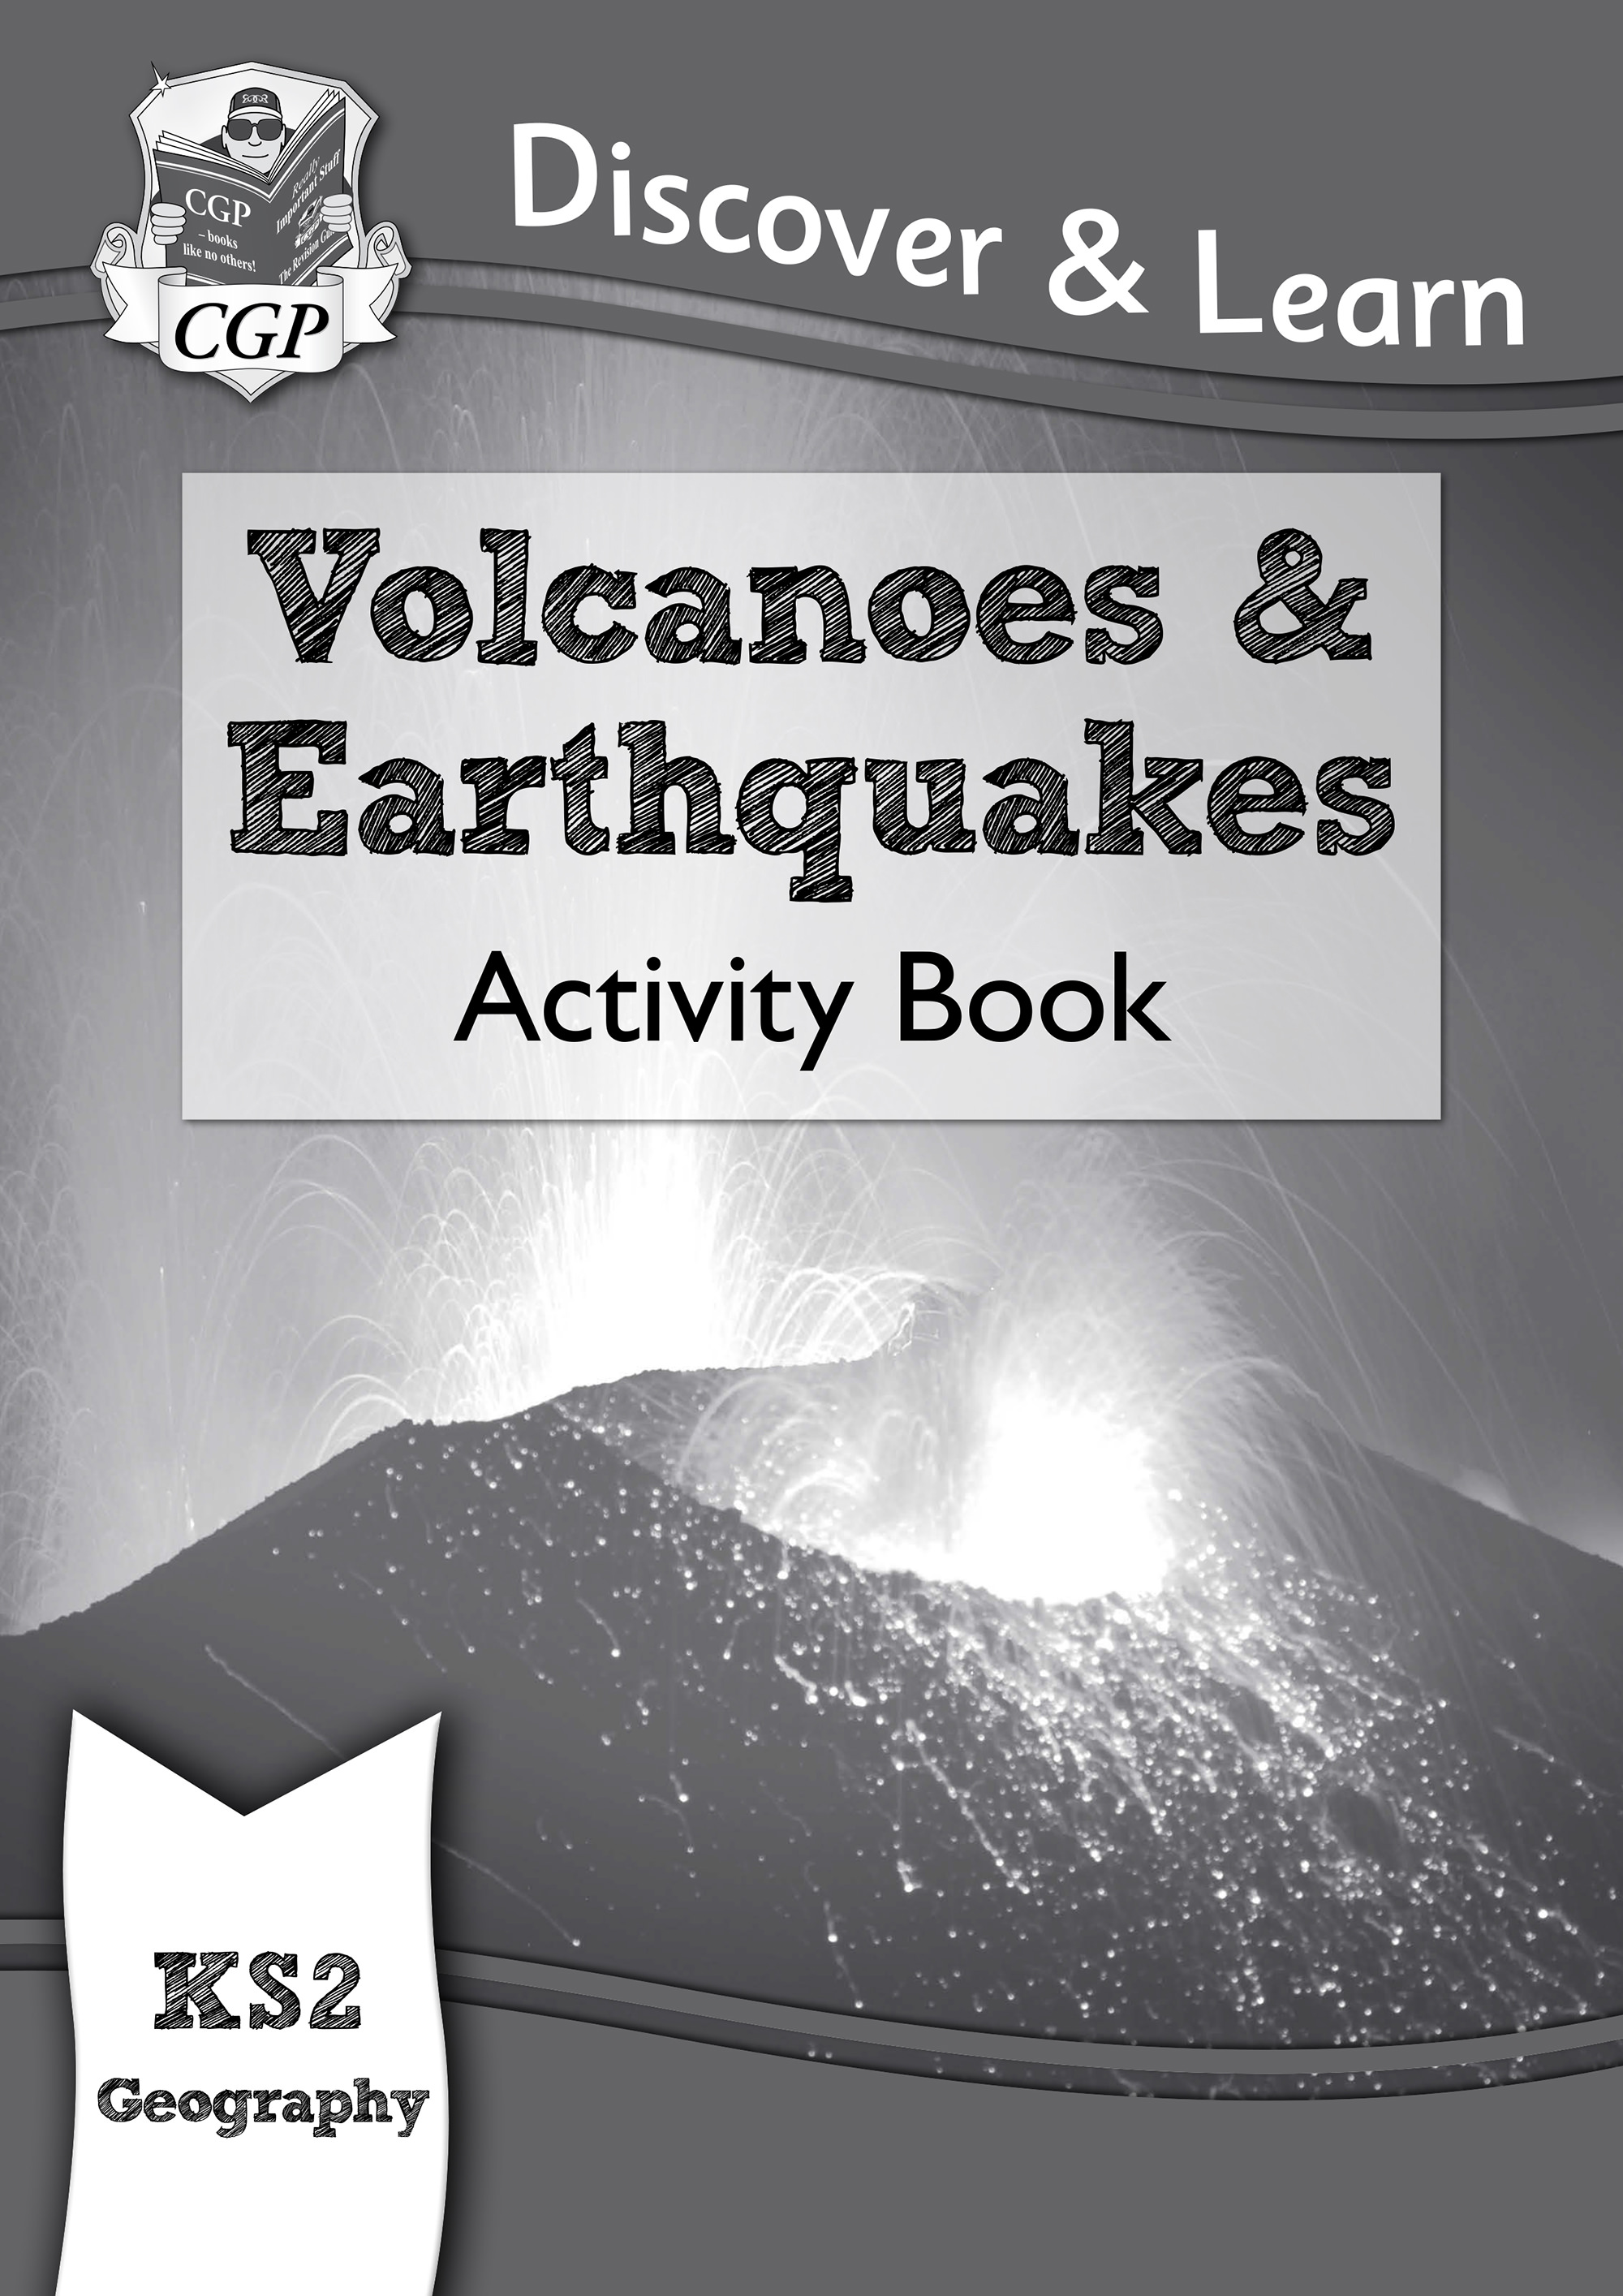 GVW21DK - KS2 Discover & Learn: Geography - Volcanoes and Earthquakes Activity Book